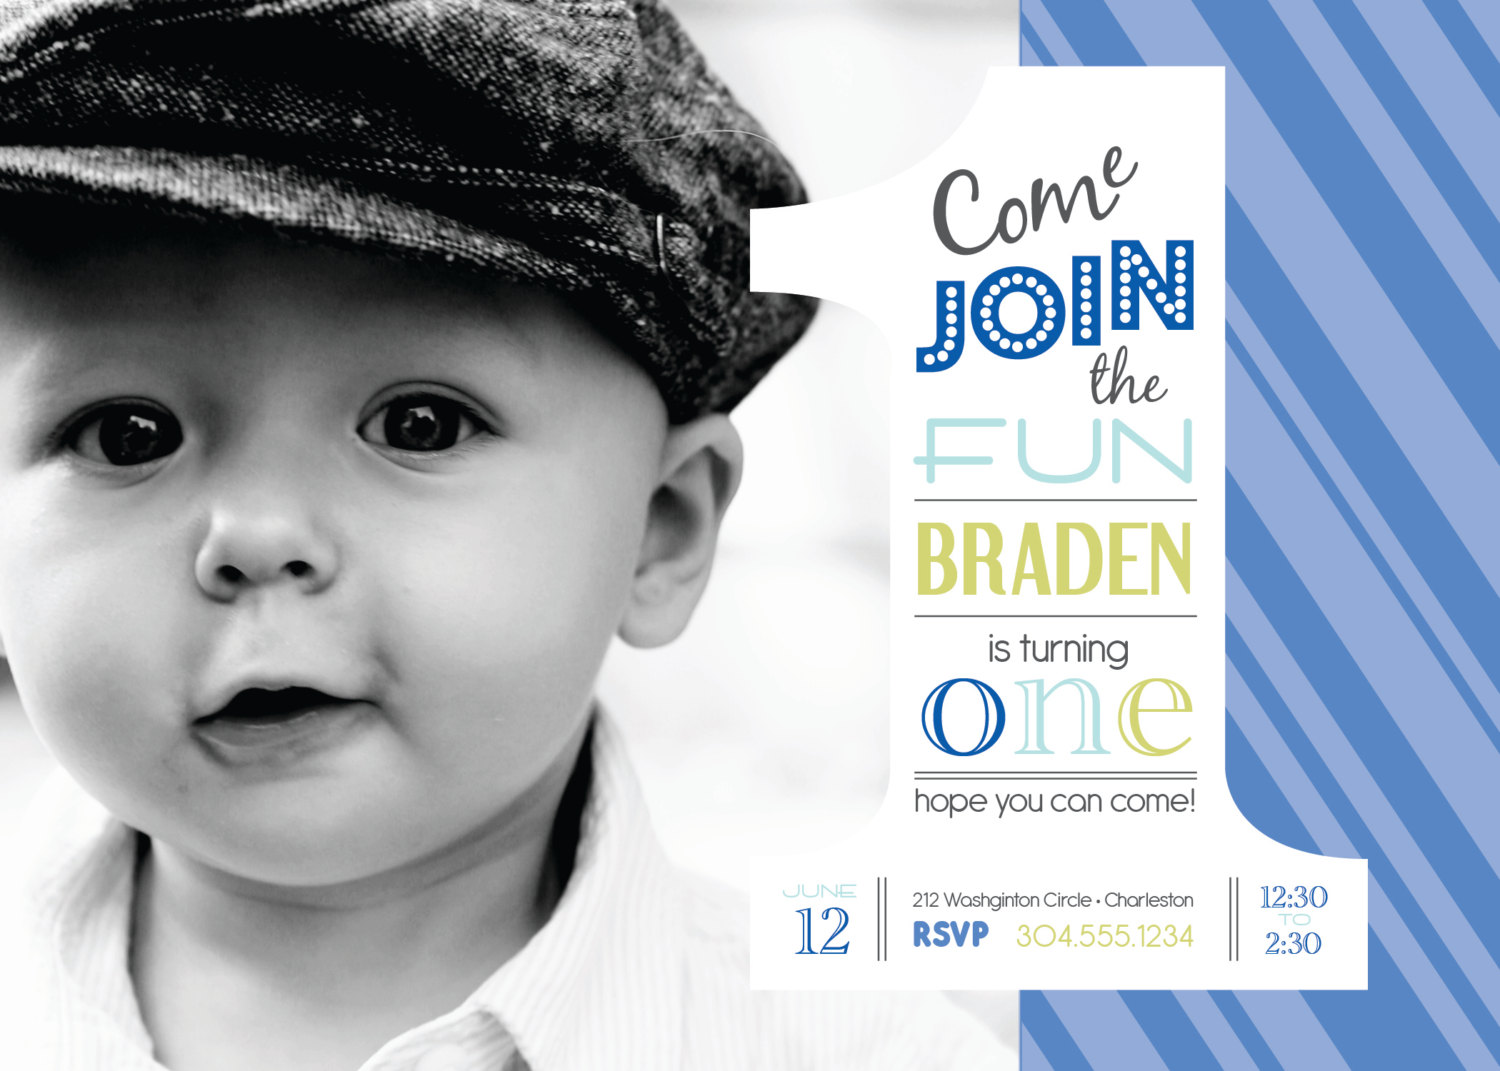 1st birthday photo invitations boy ; 1st-birthday-invitations-boy-to-get-ideas-how-to-make-your-own-birthday-invitation-design-6